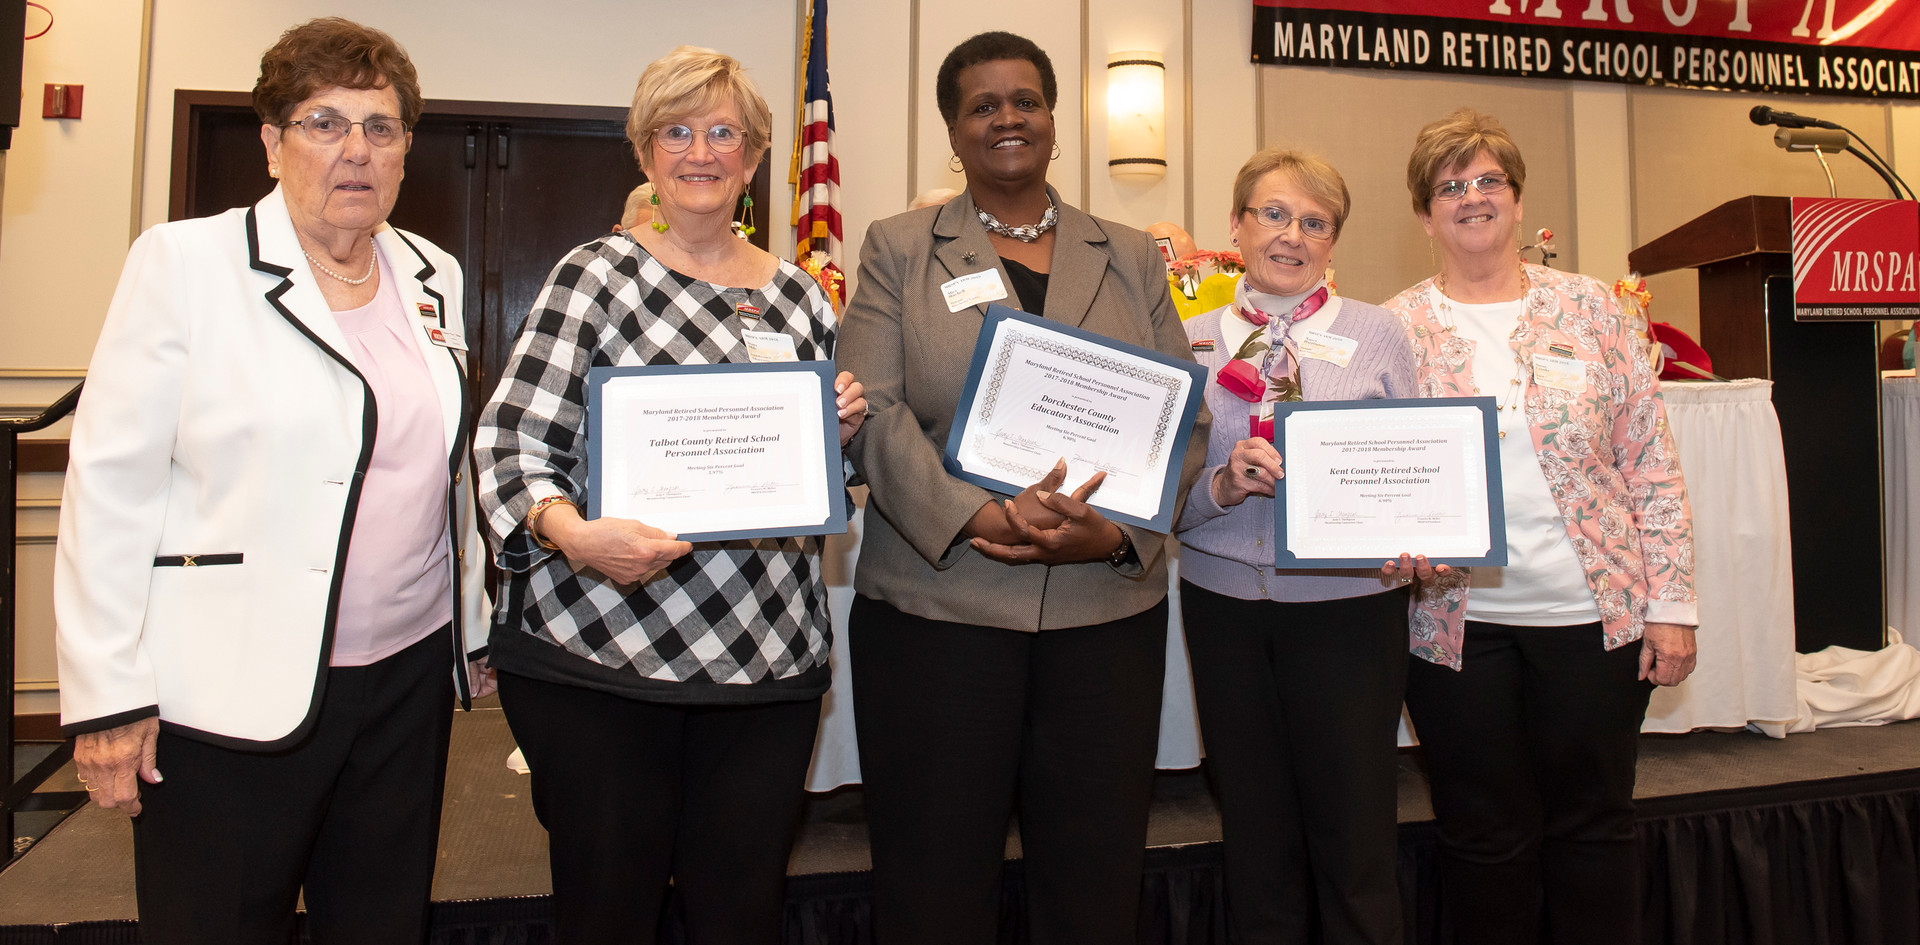 Membership Awards for Meeting Six-Percent Goal